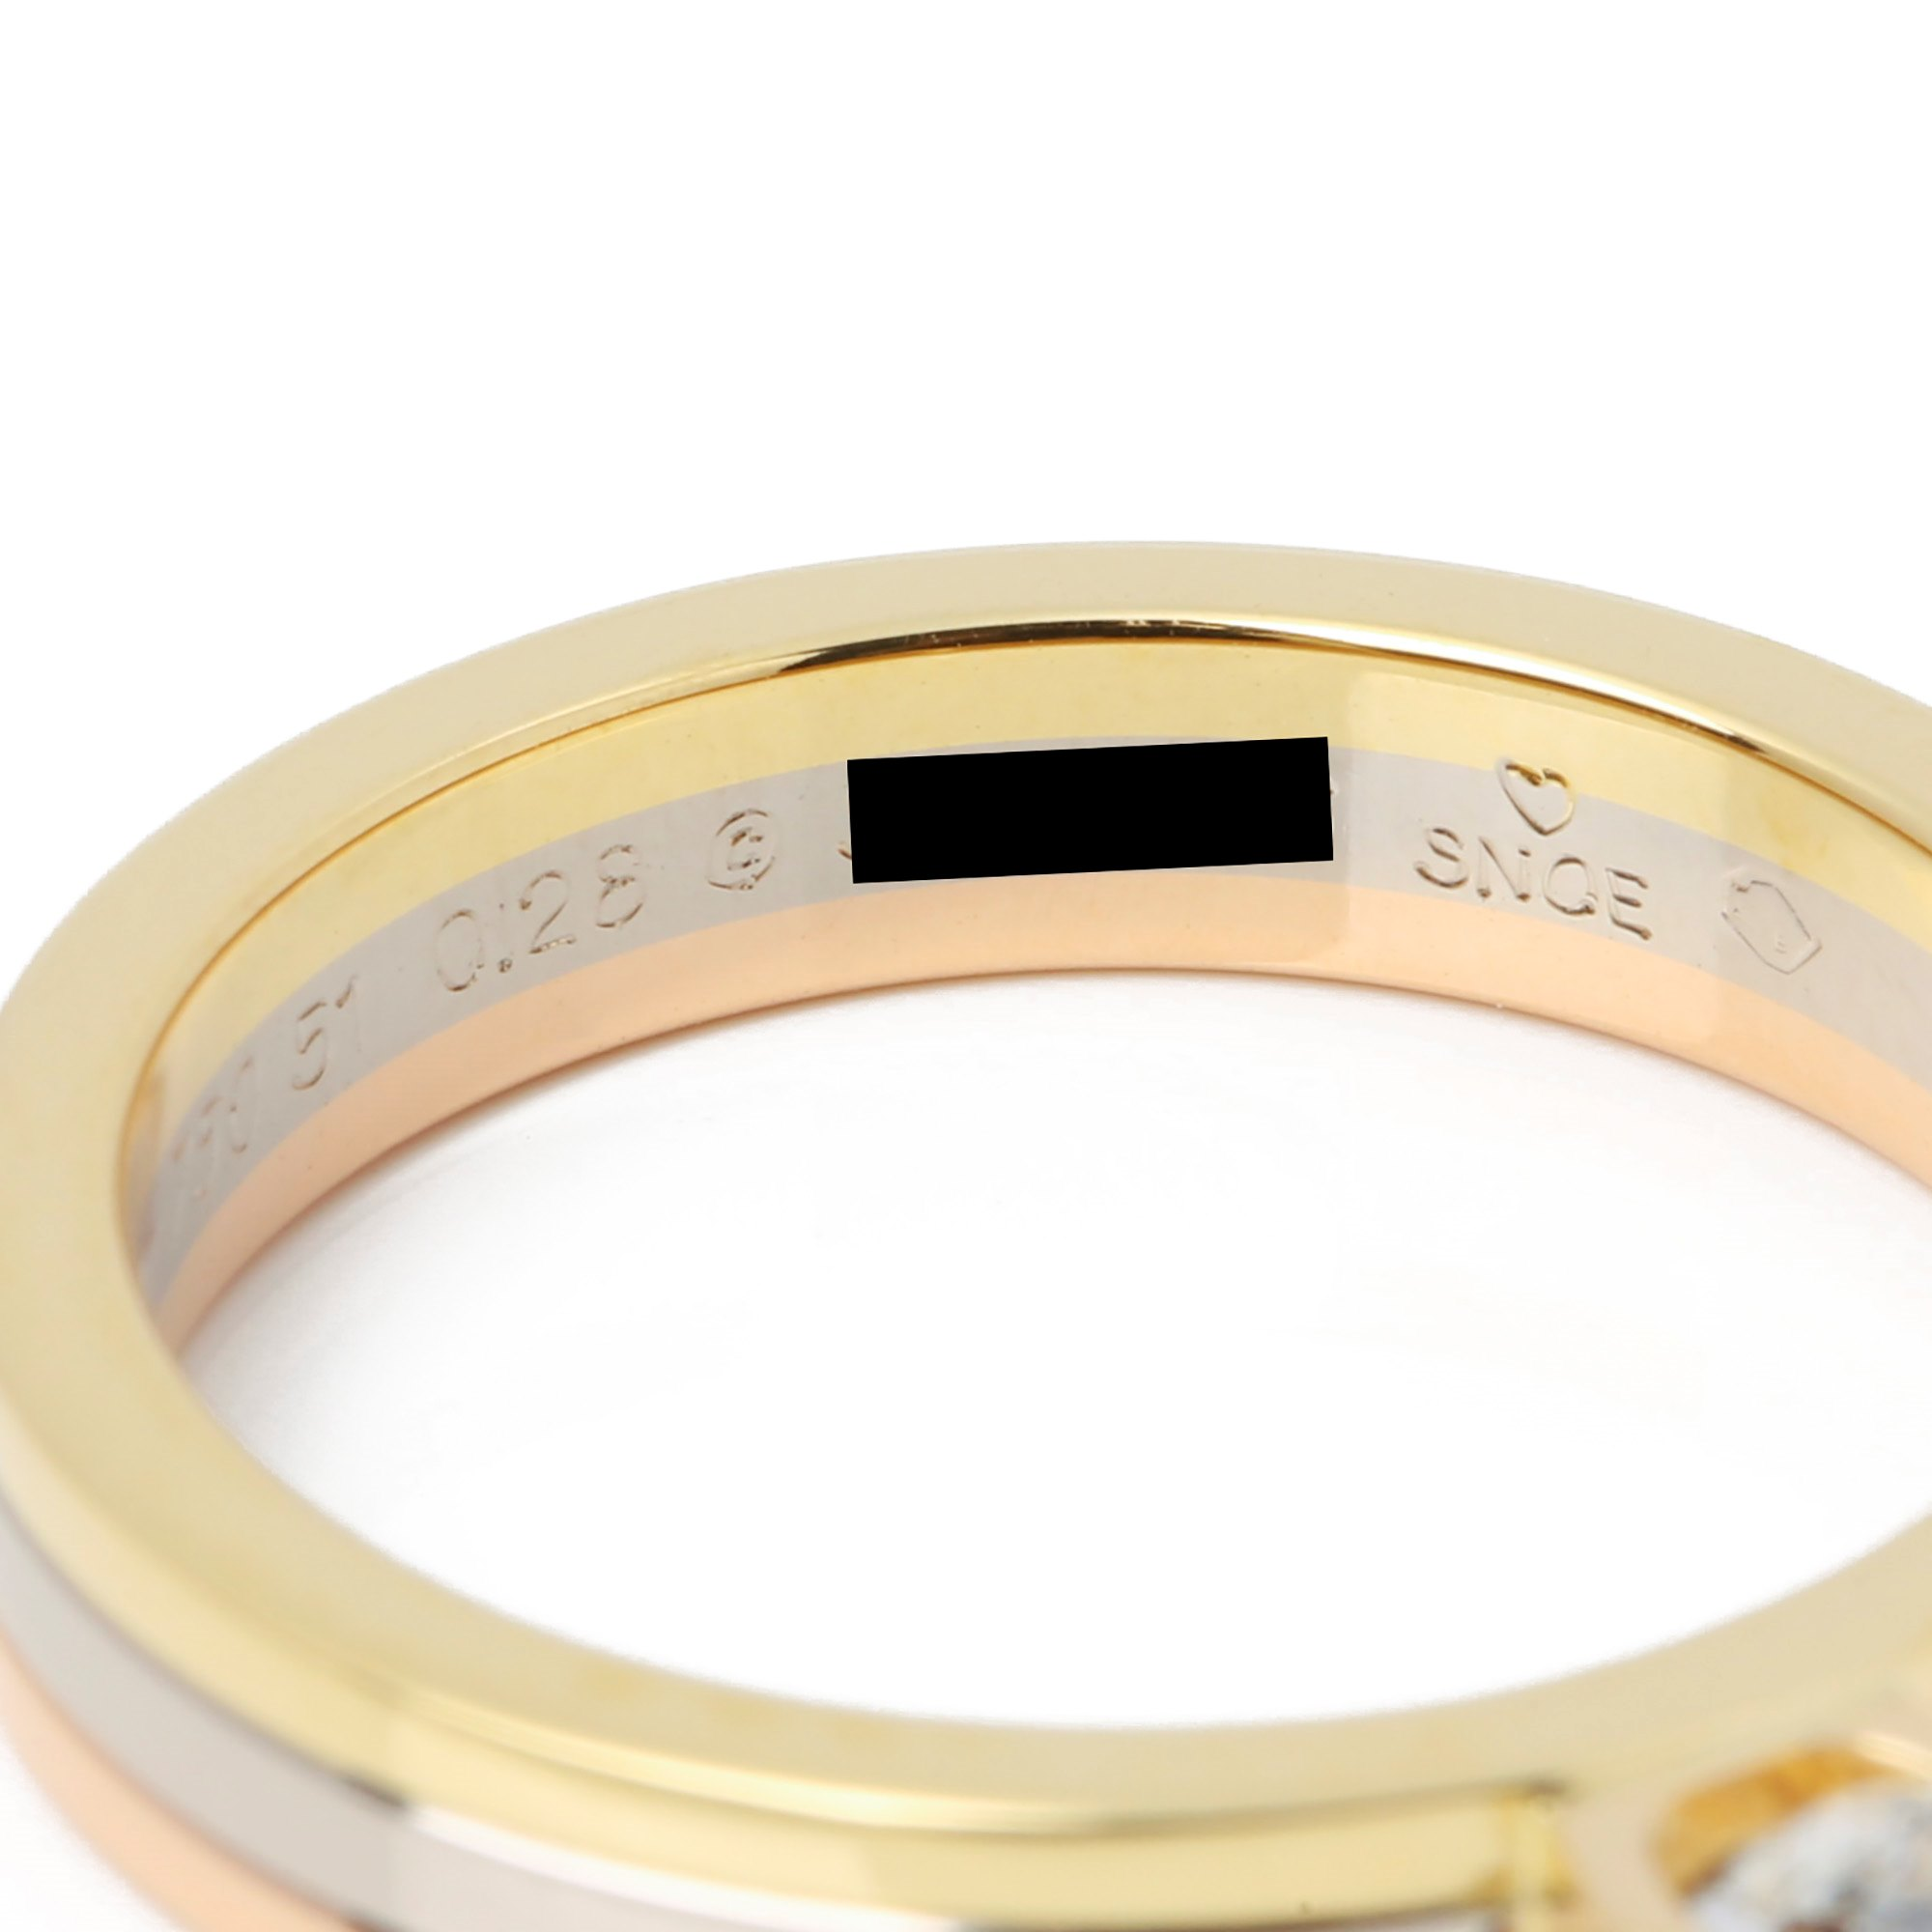 Cartier 18ct Gold Trinity solitaire ring